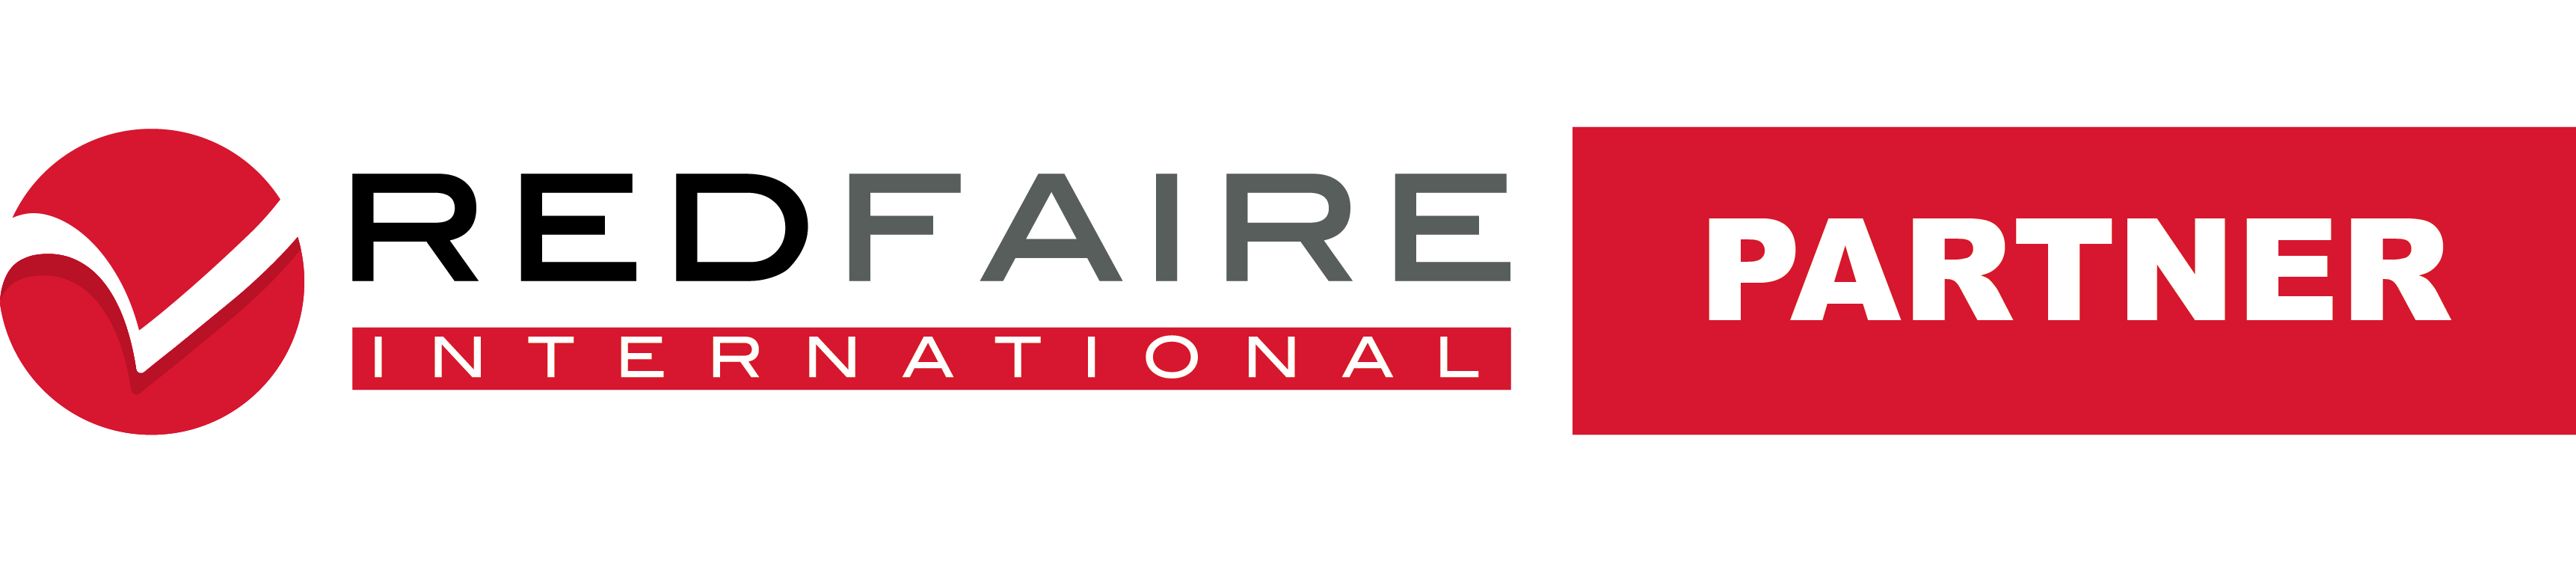 Redfaire International Partner logo